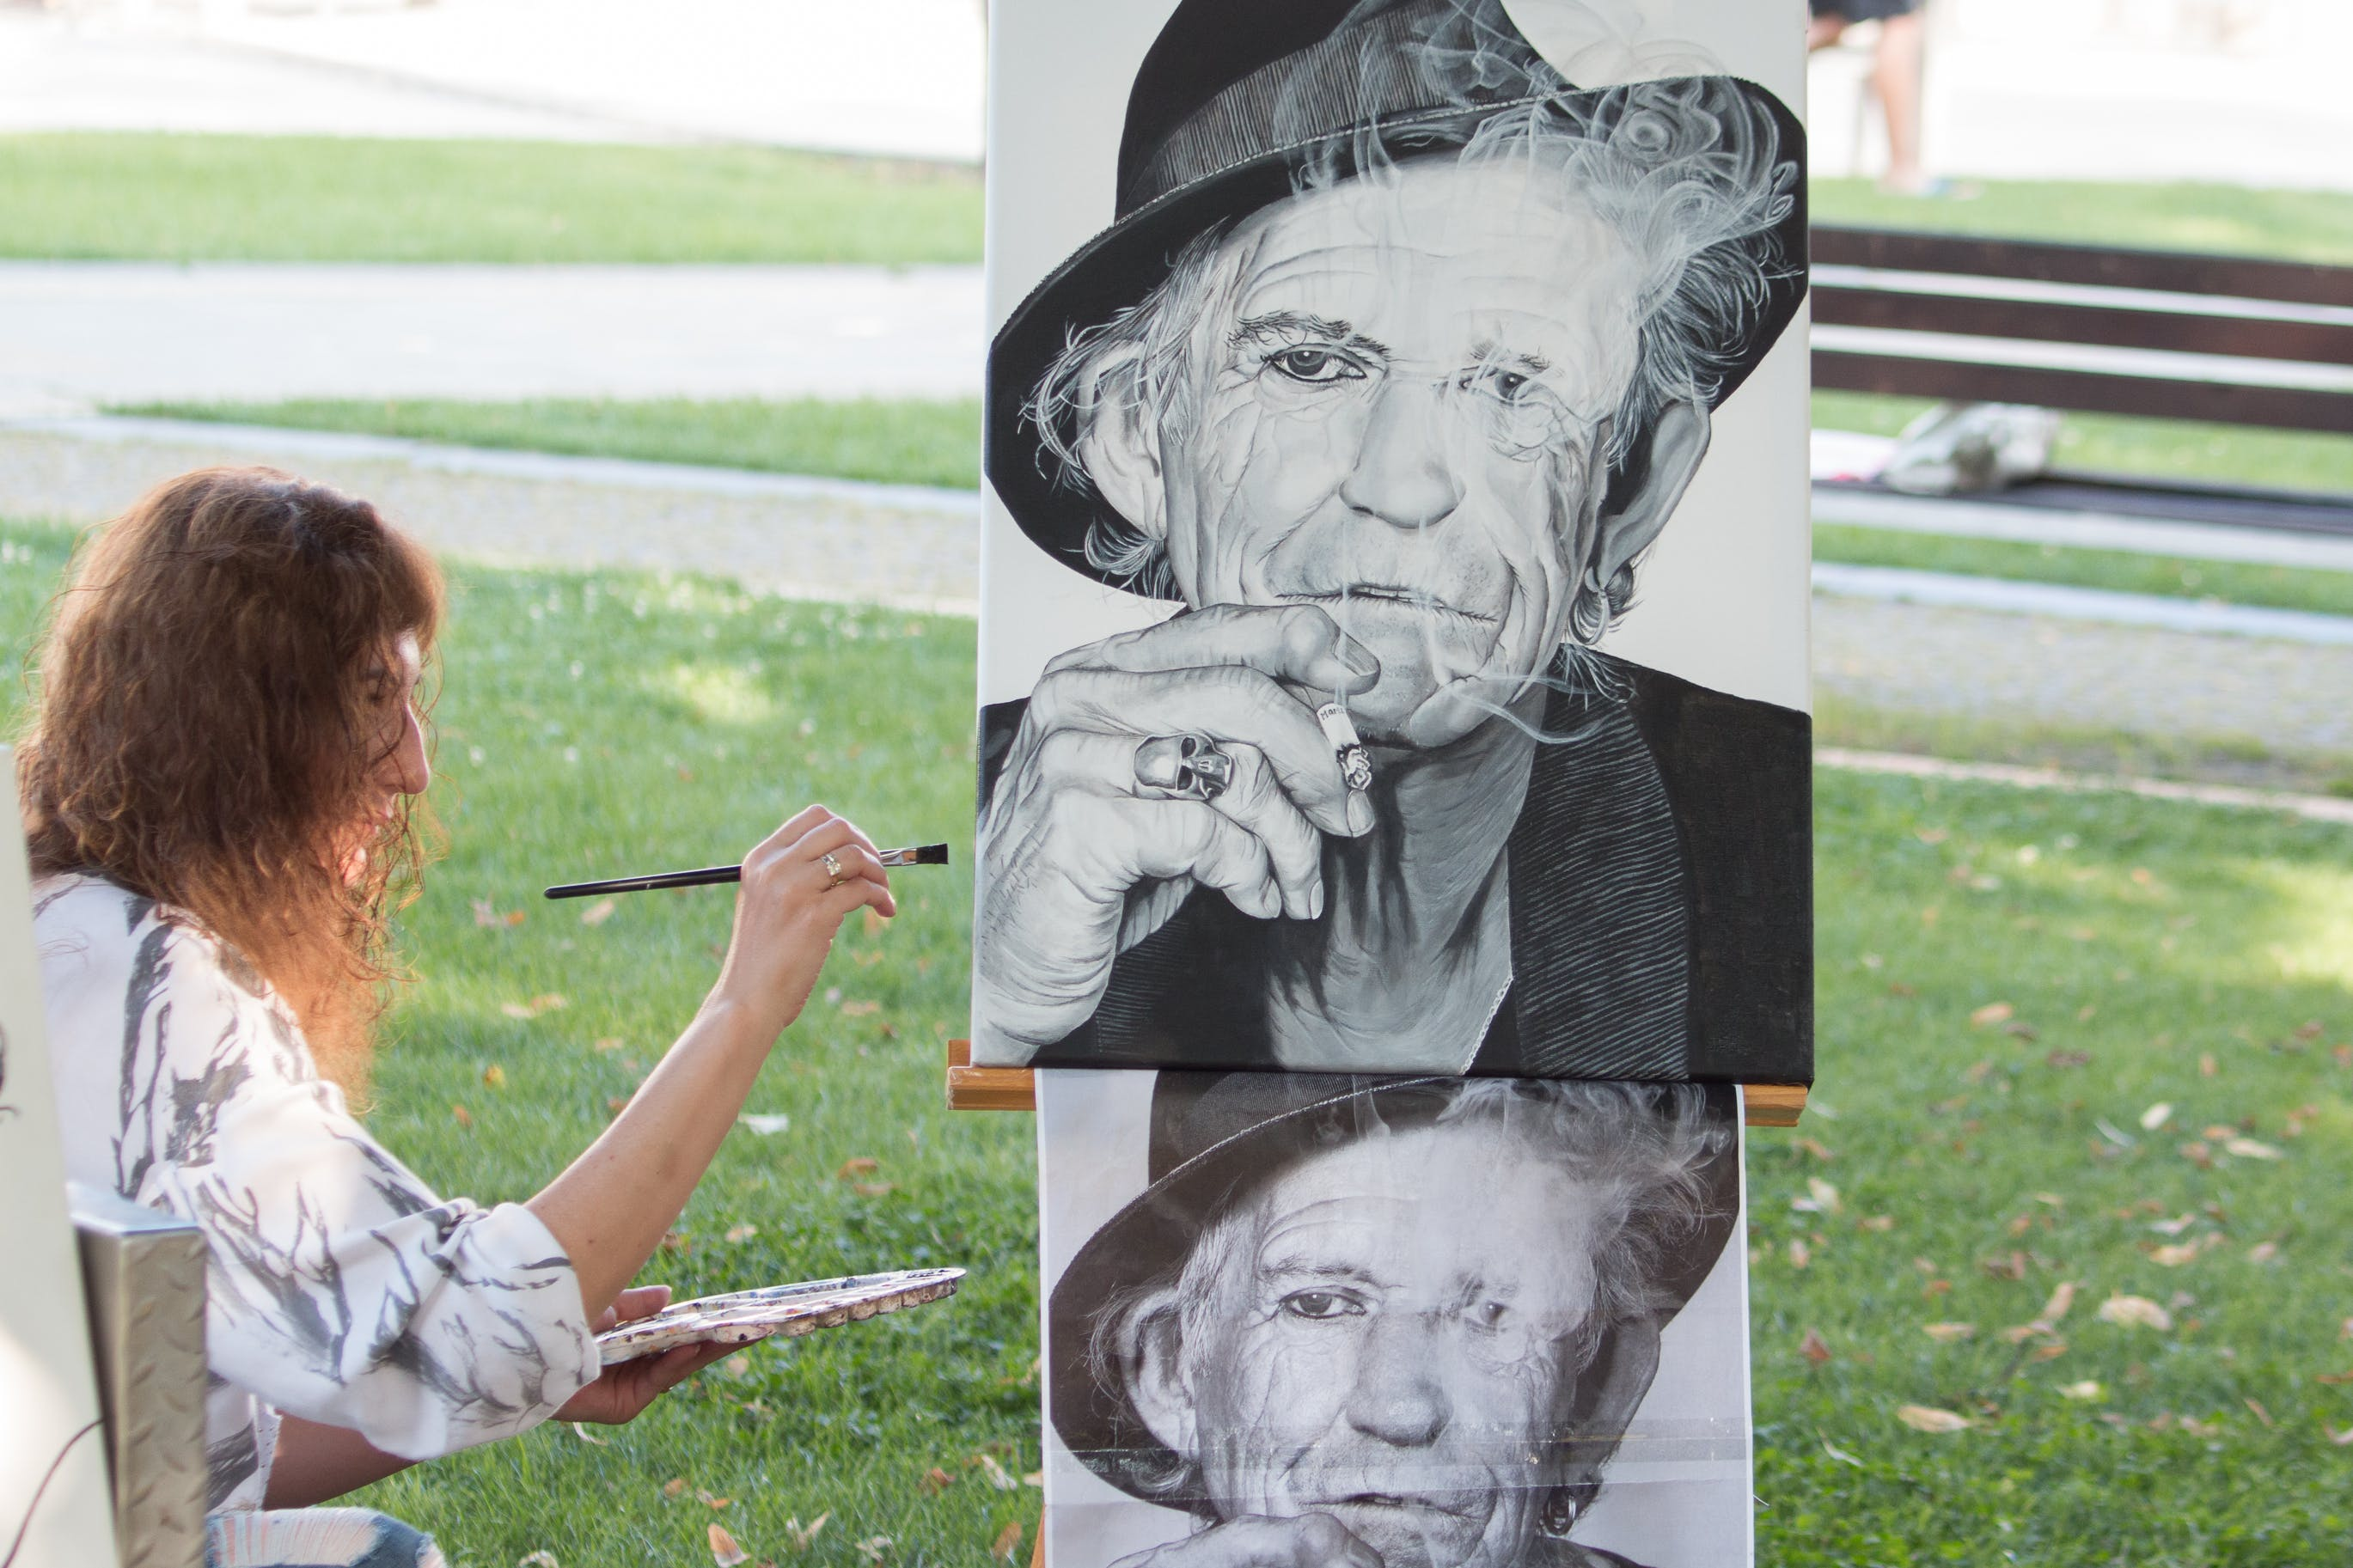 Person painting man's portrait from photograph outdoors